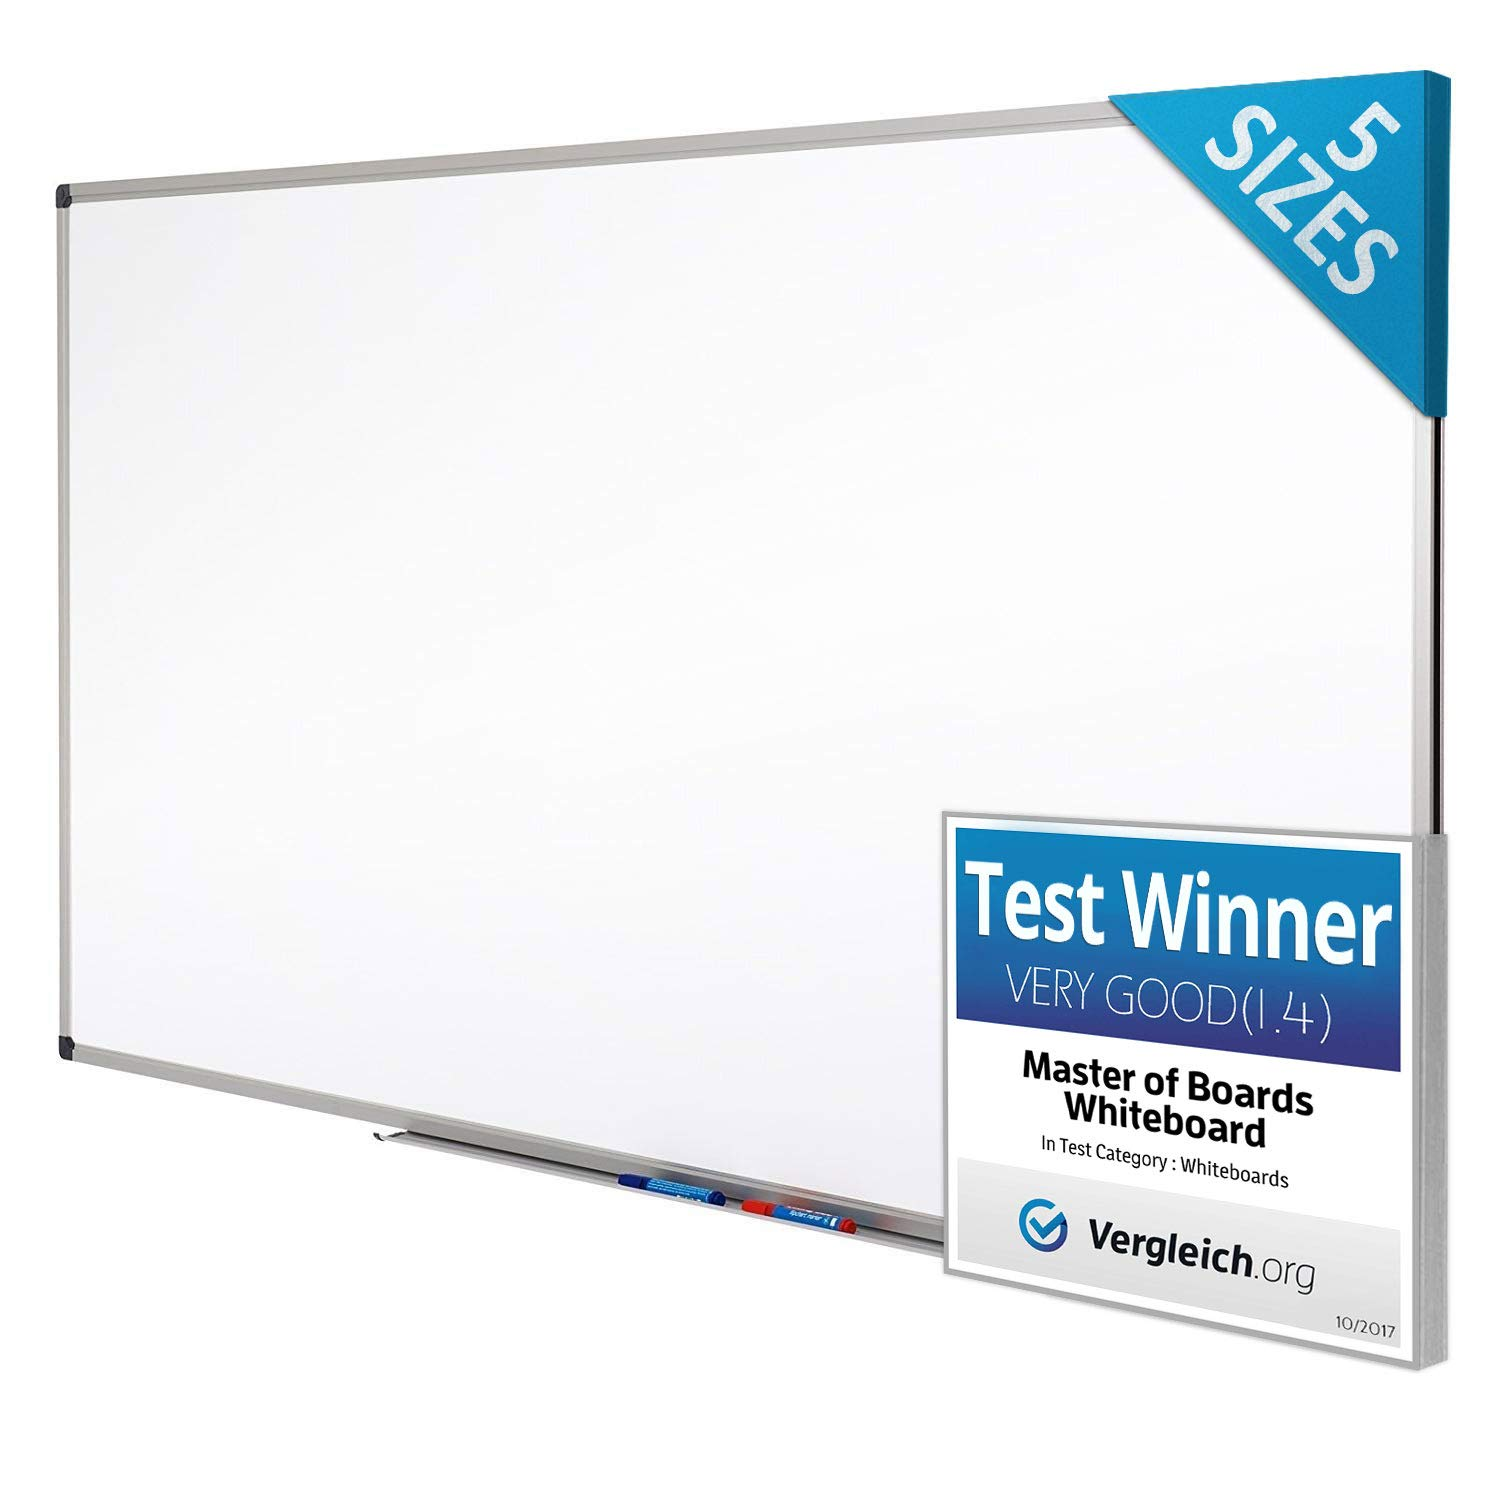 be5b3bca8c Magnetic Whiteboard | Dry Erase Board | # 1 White Board in Europe |  Excellent for Office and Home - 90x60cm: Amazon.co.uk: Office Products